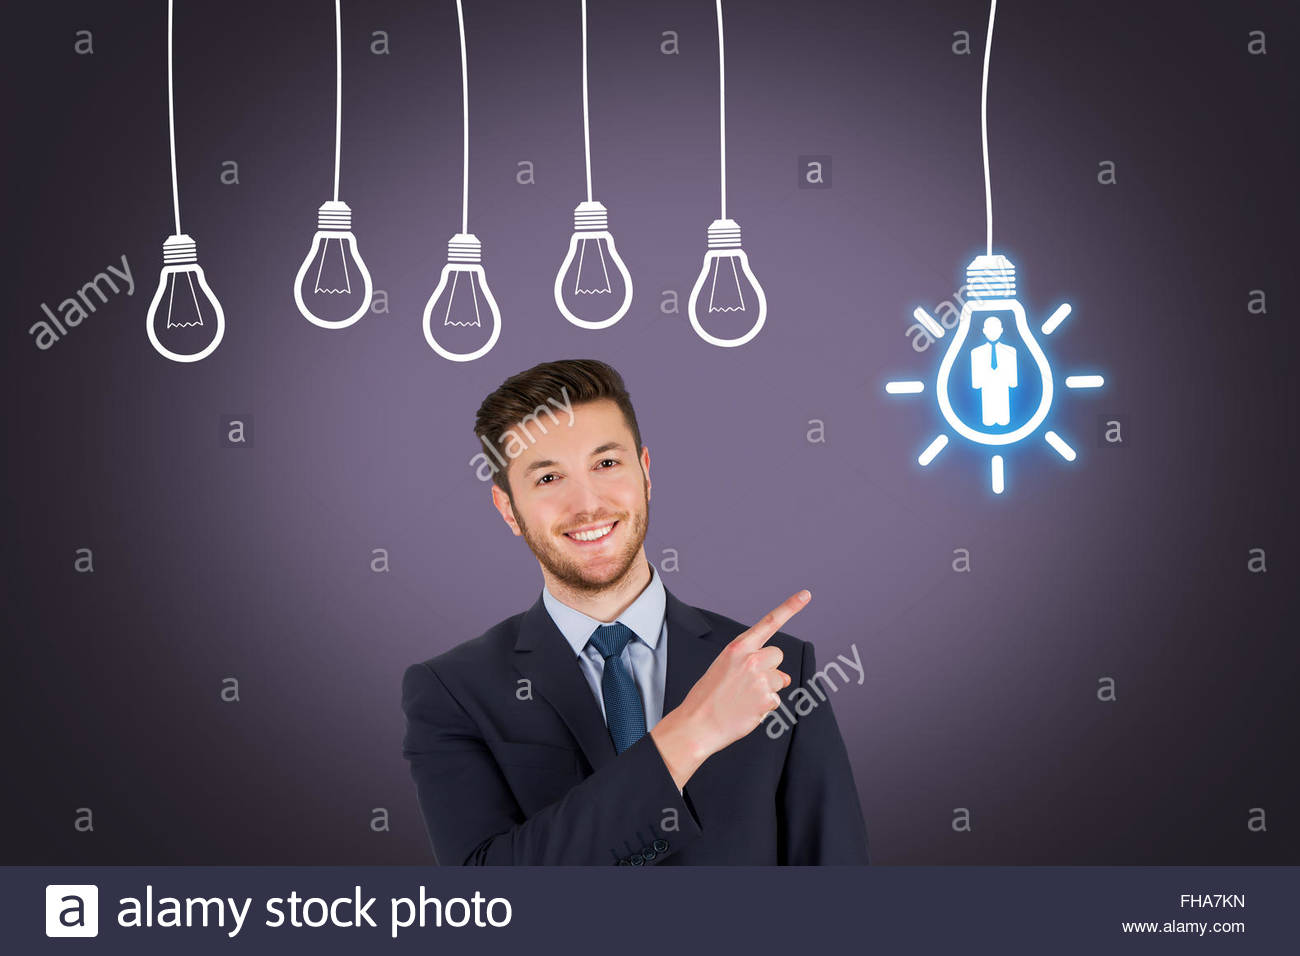 Businessman Human Resource Idea - Stock Image